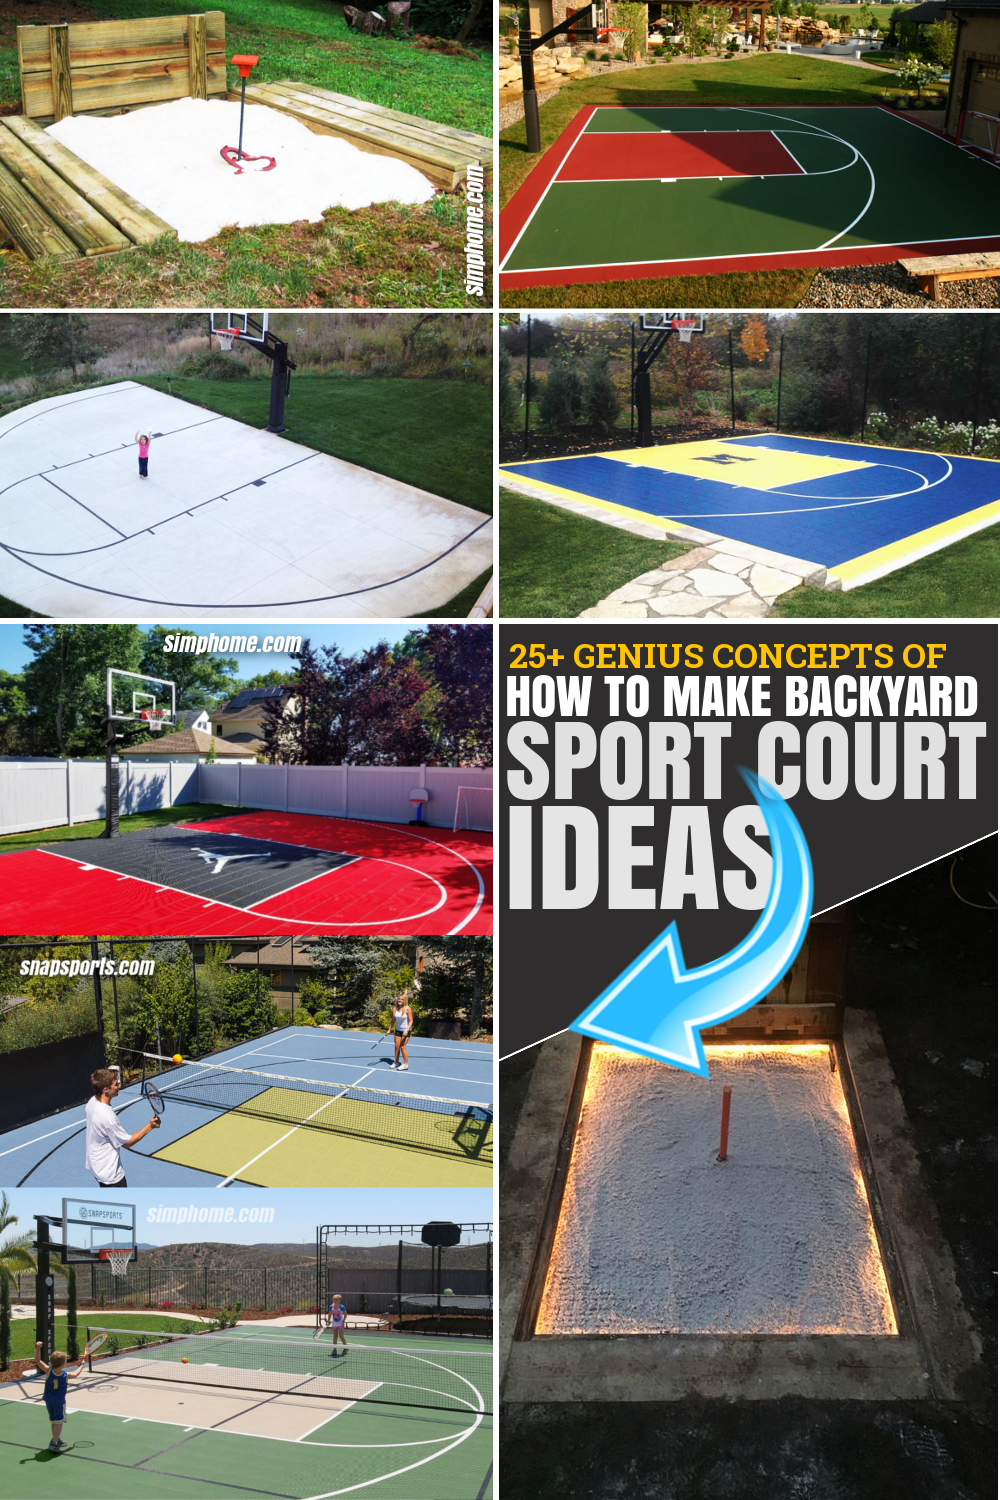 SIMPHOME.COM 30 Genius Concepts of How to Make Backyard Sport Court Ideas Featured Pinterest Image